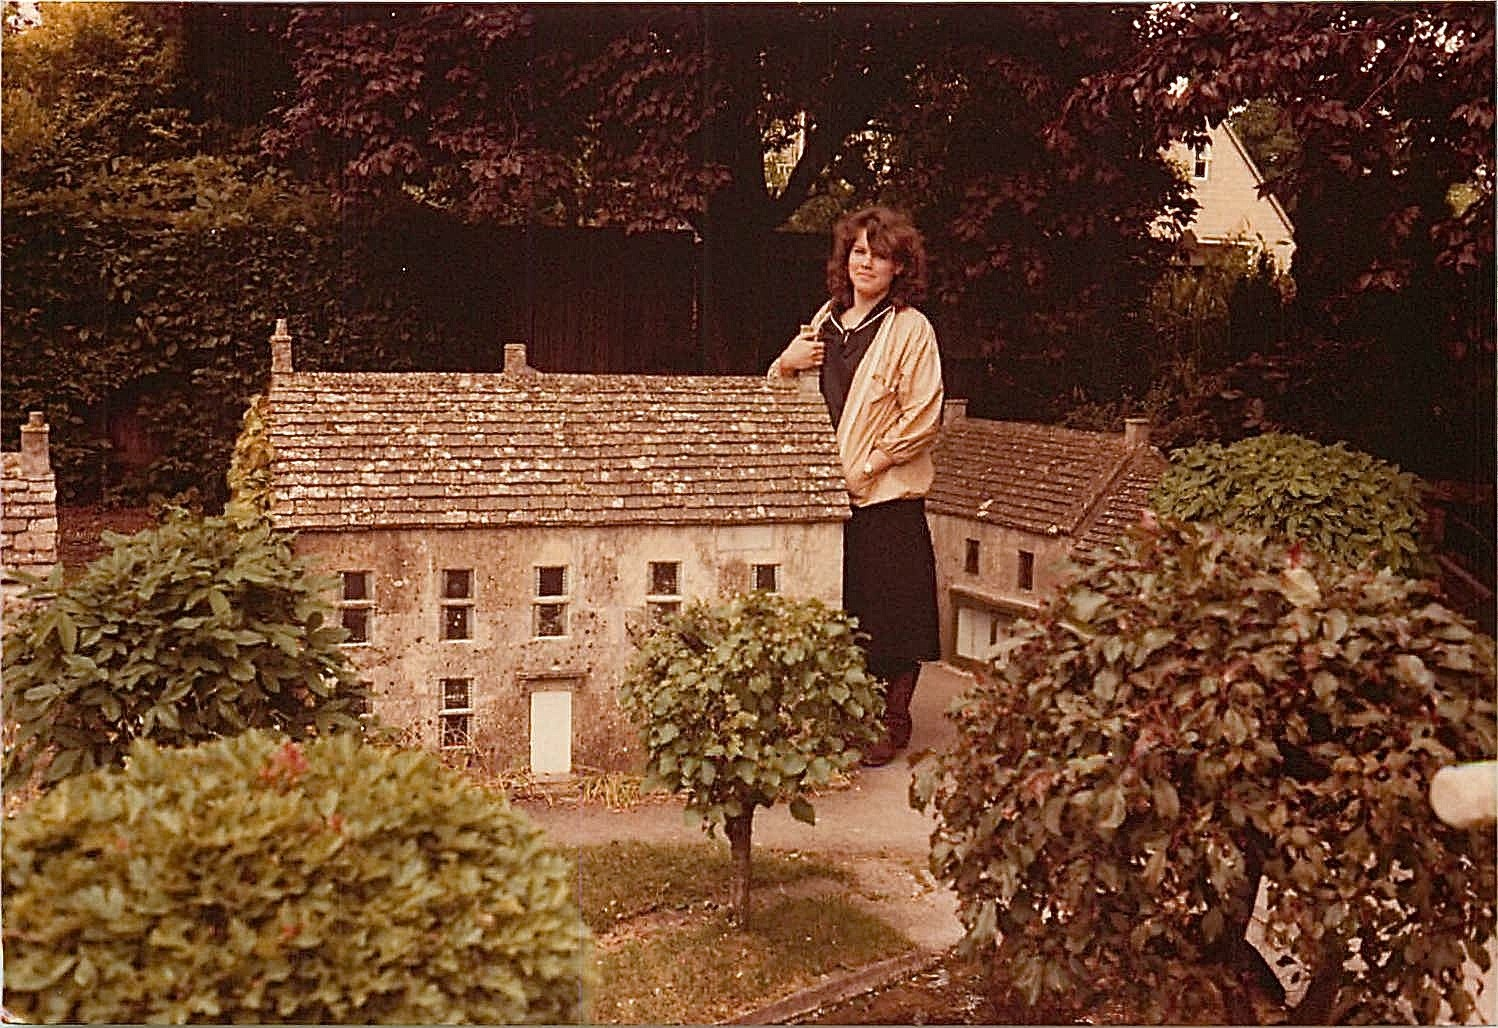 Celeste miniature village, Cotswolds, England, 1979-Lorraine visited Celeste